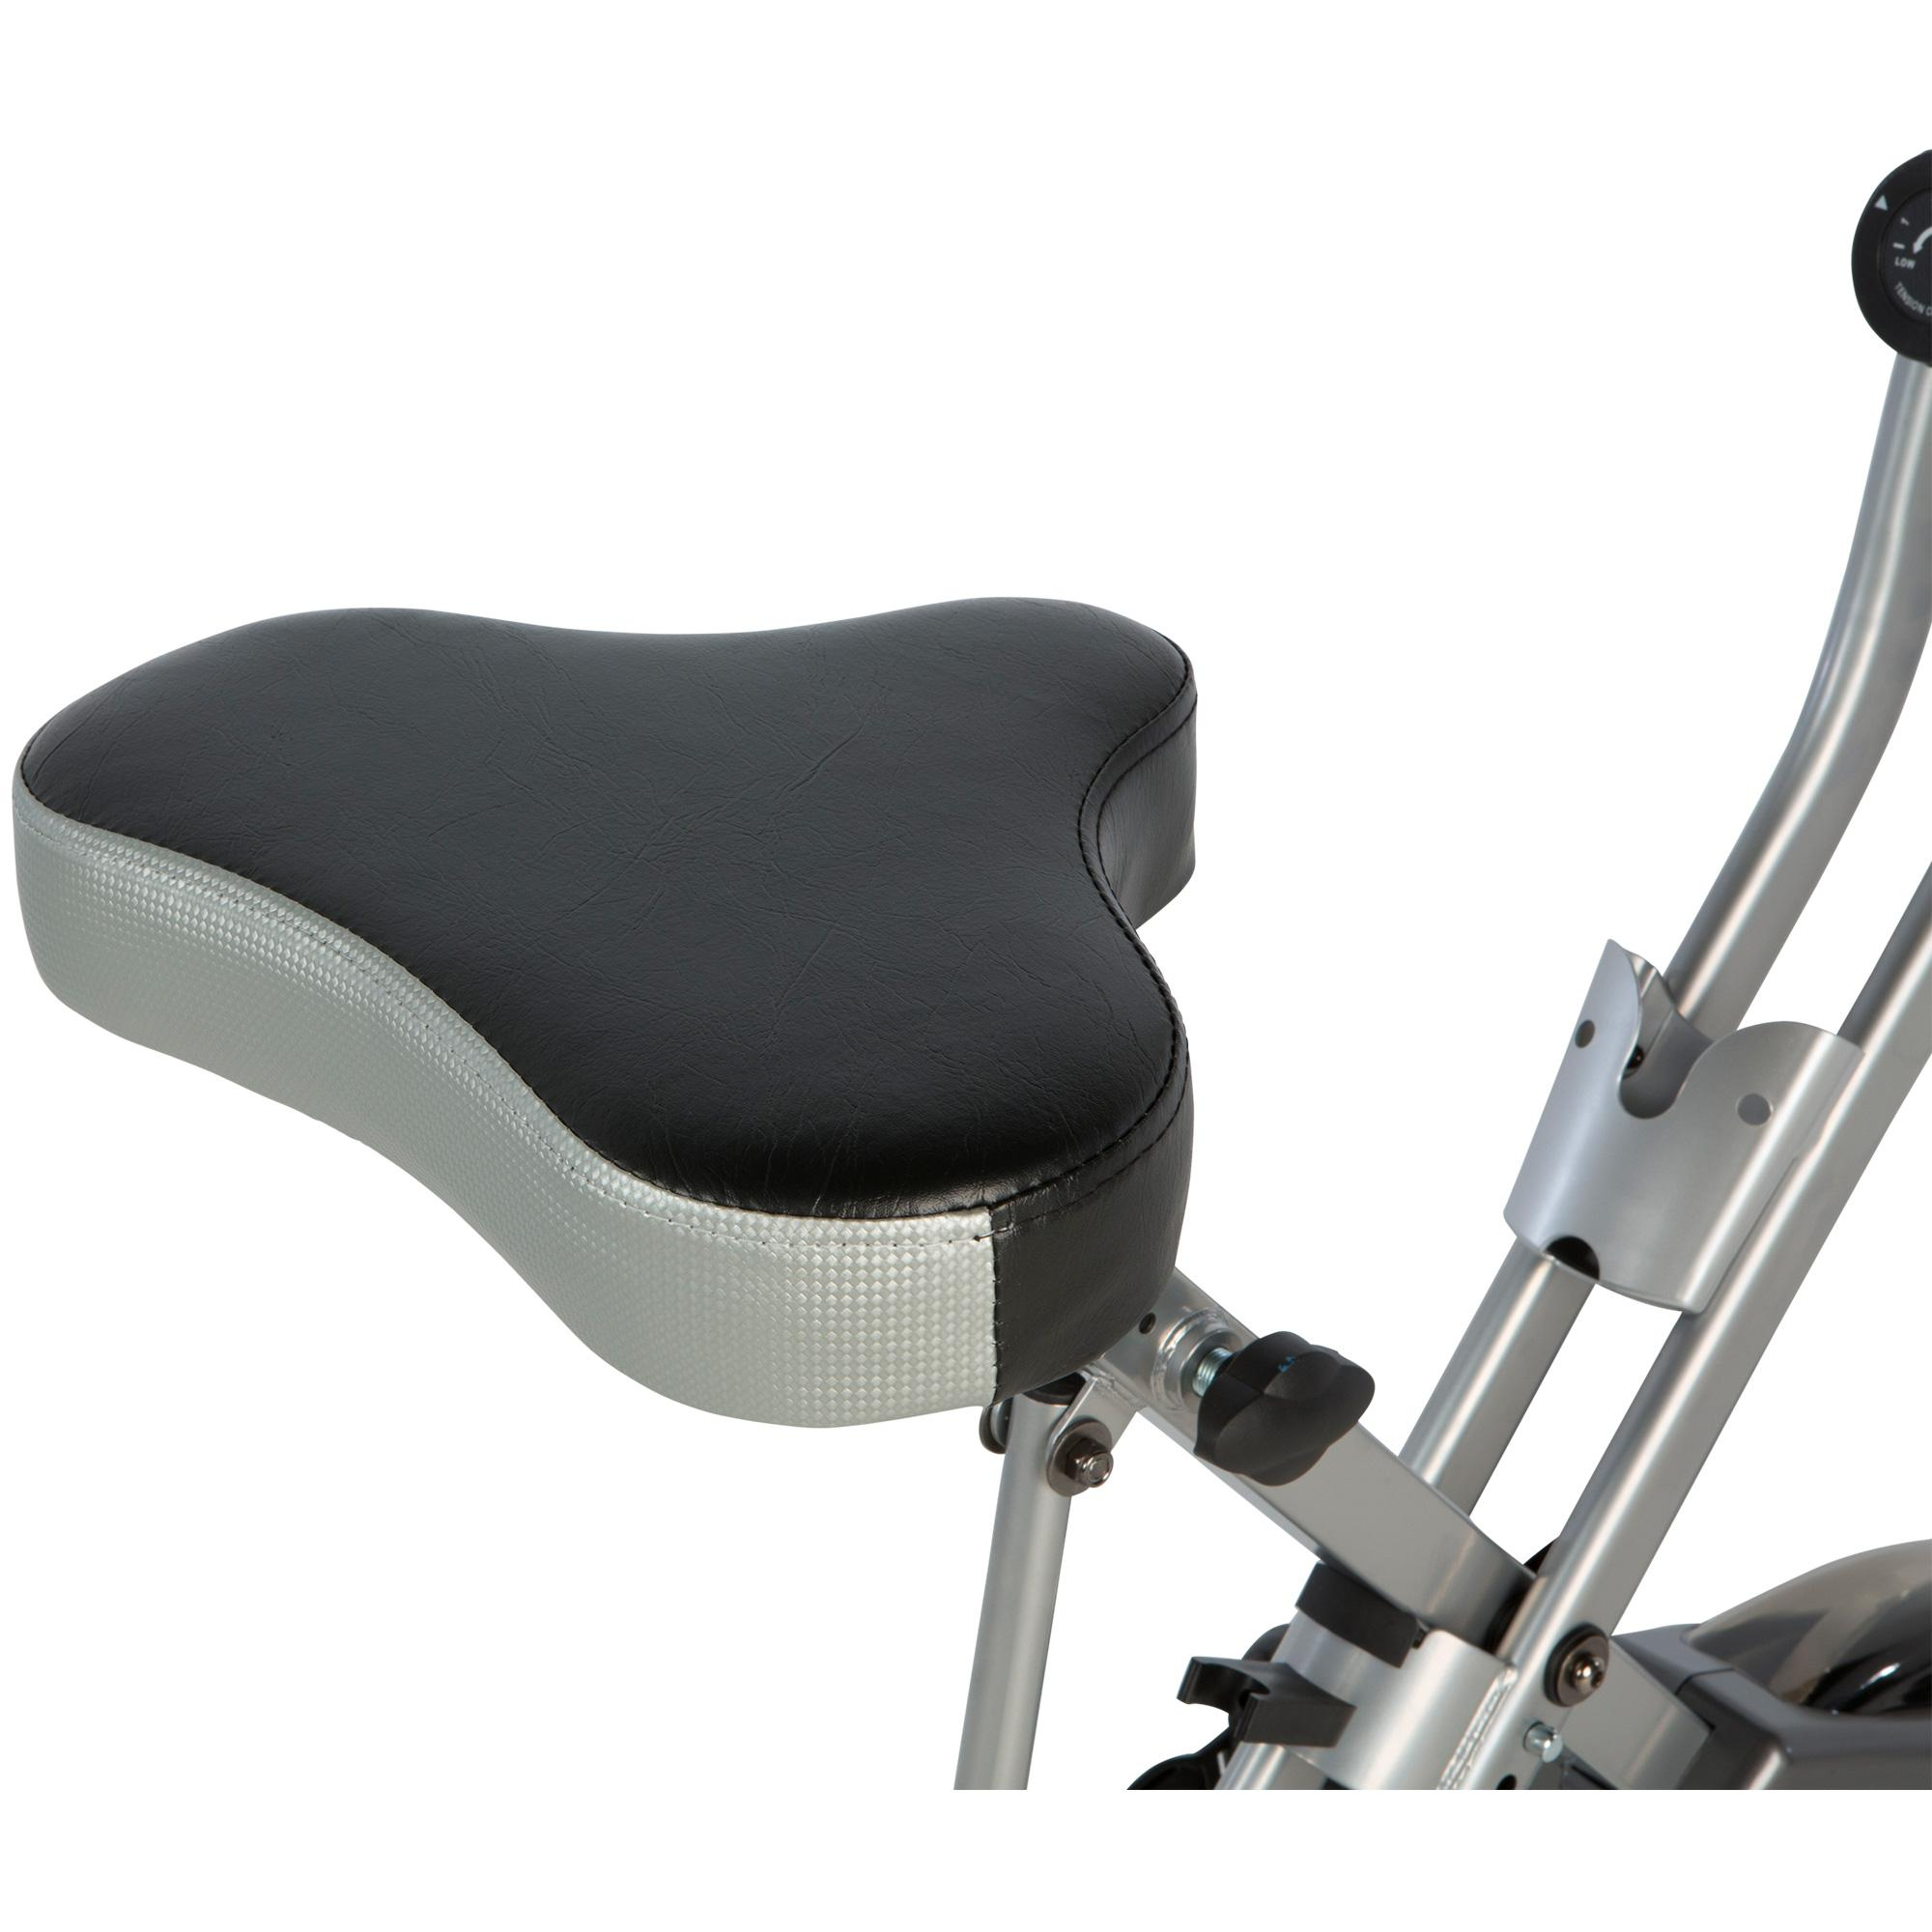 New Upright Exerpeutic Folding Magnetic Exercise Bike With Pulse